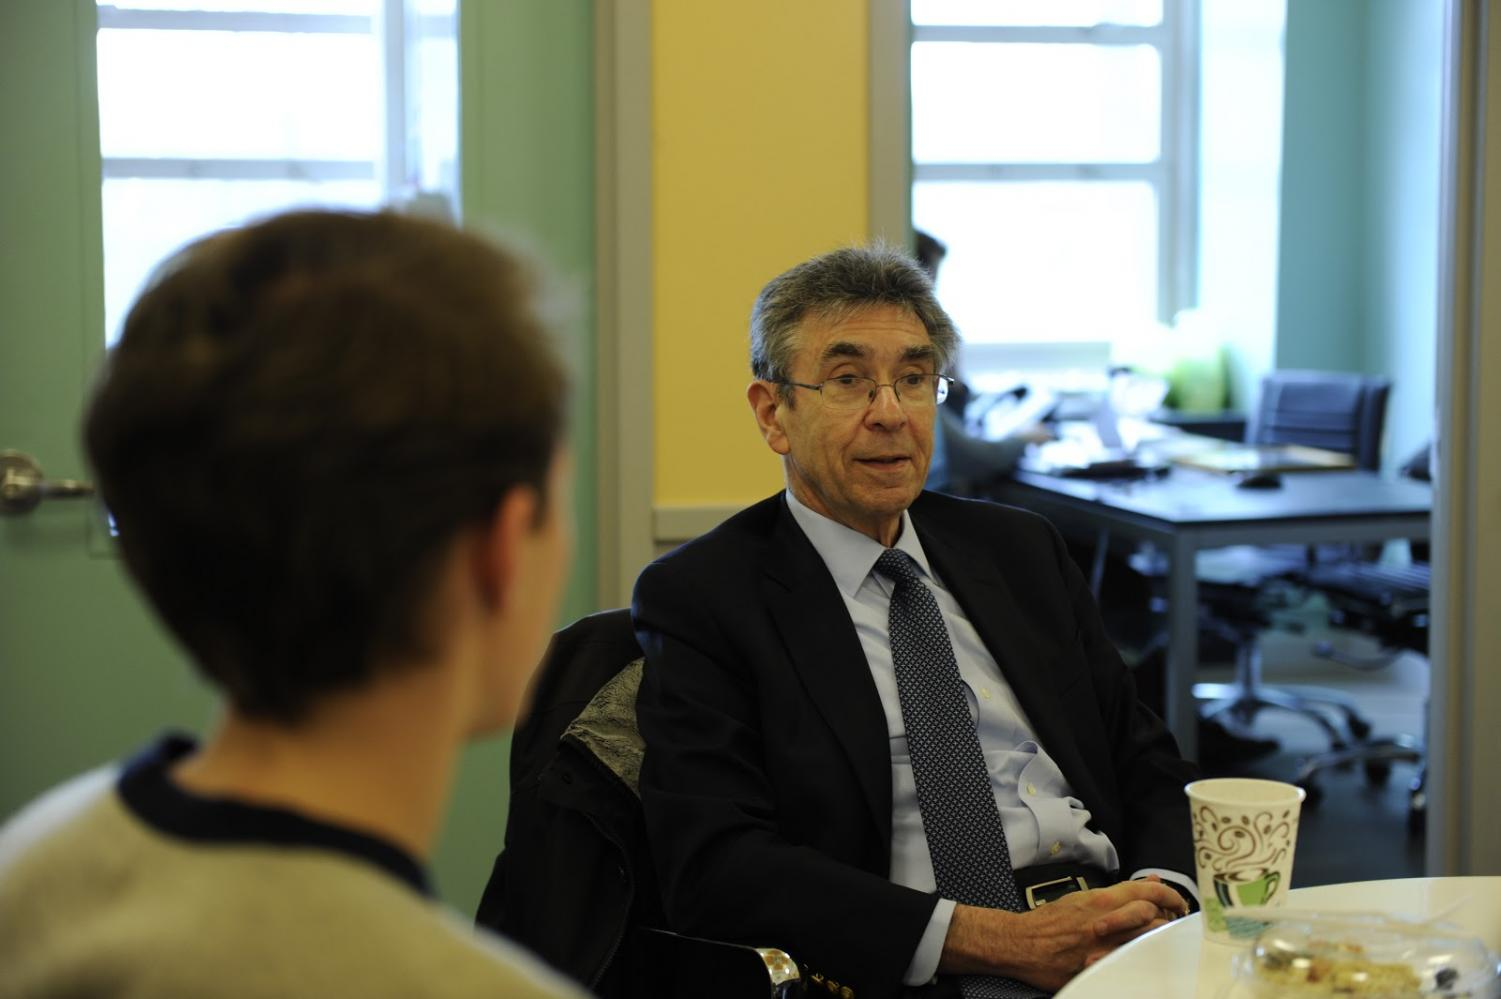 Dr. Lefkowitz enjoys a quick lunch with students such as James Snyder '18, discussing his career and experiences.